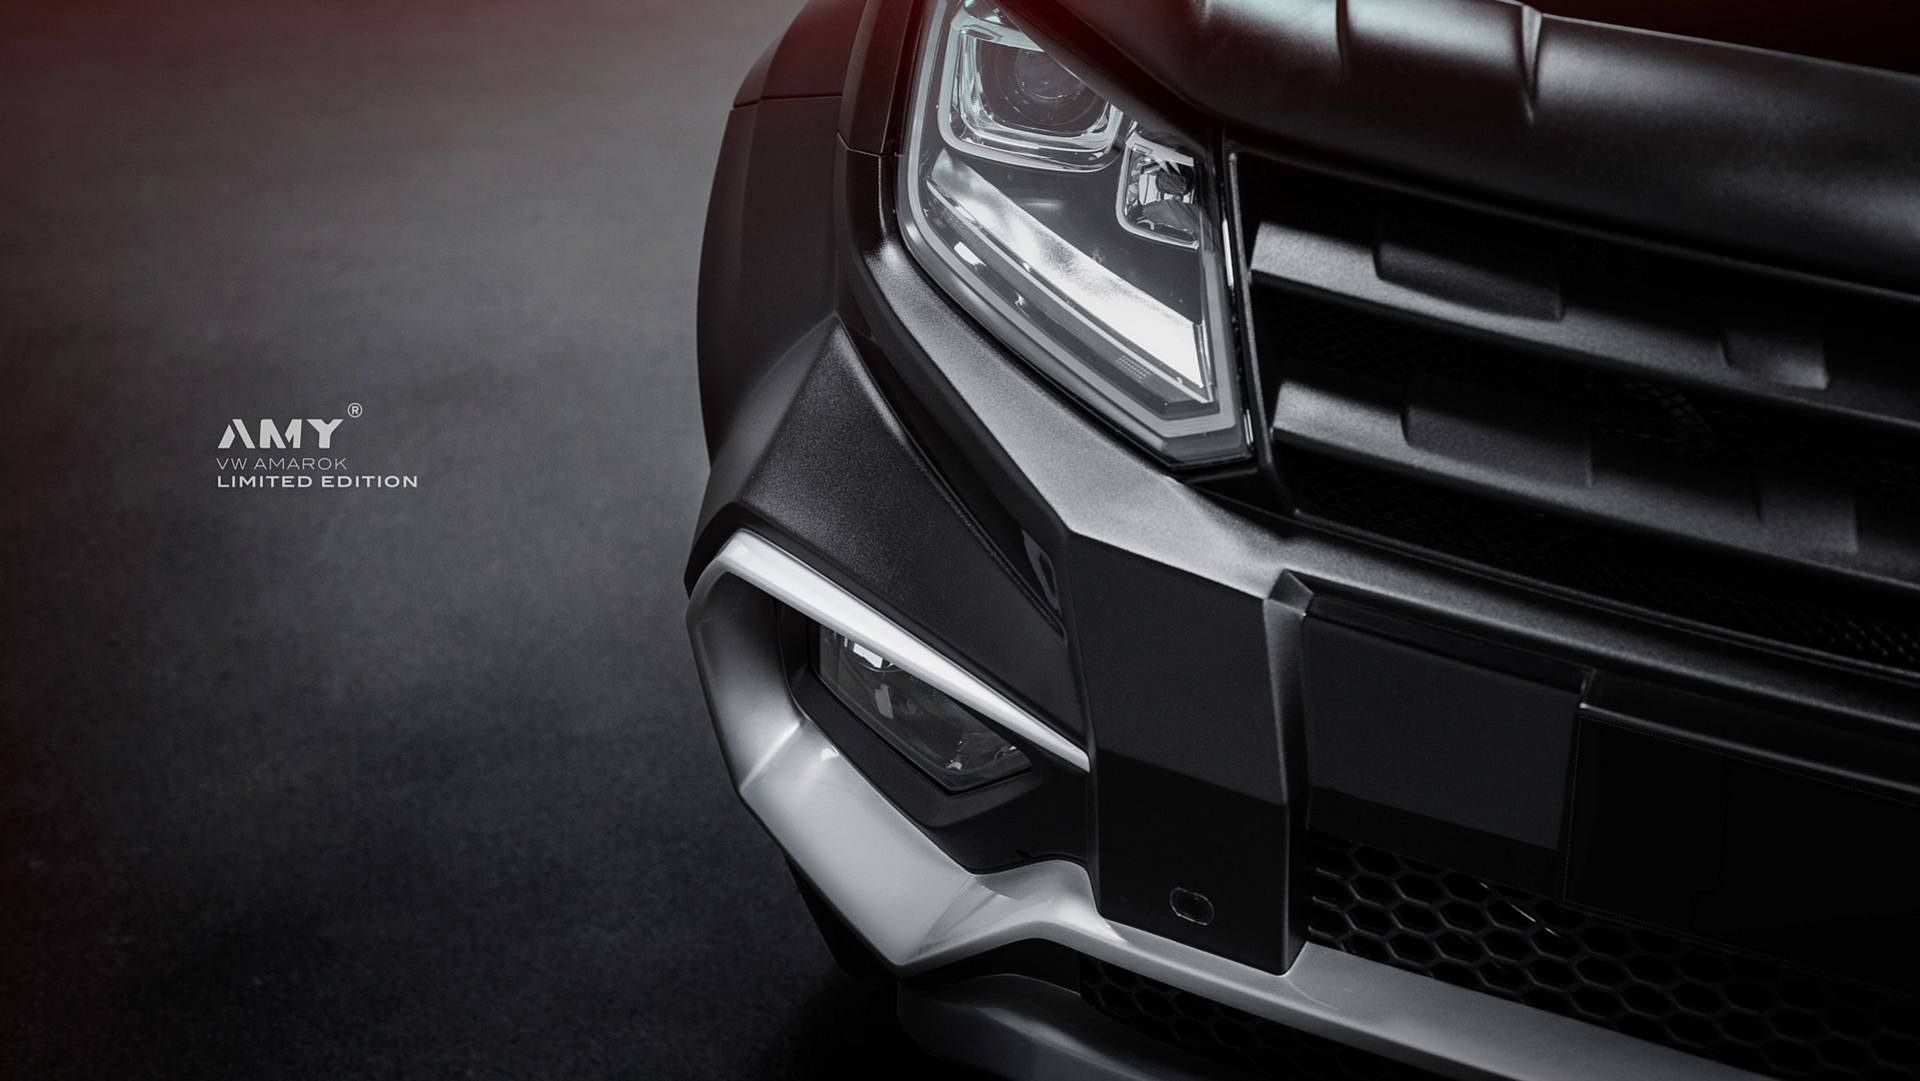 Volkswagen Amarok Amy by Carlex Design (10)